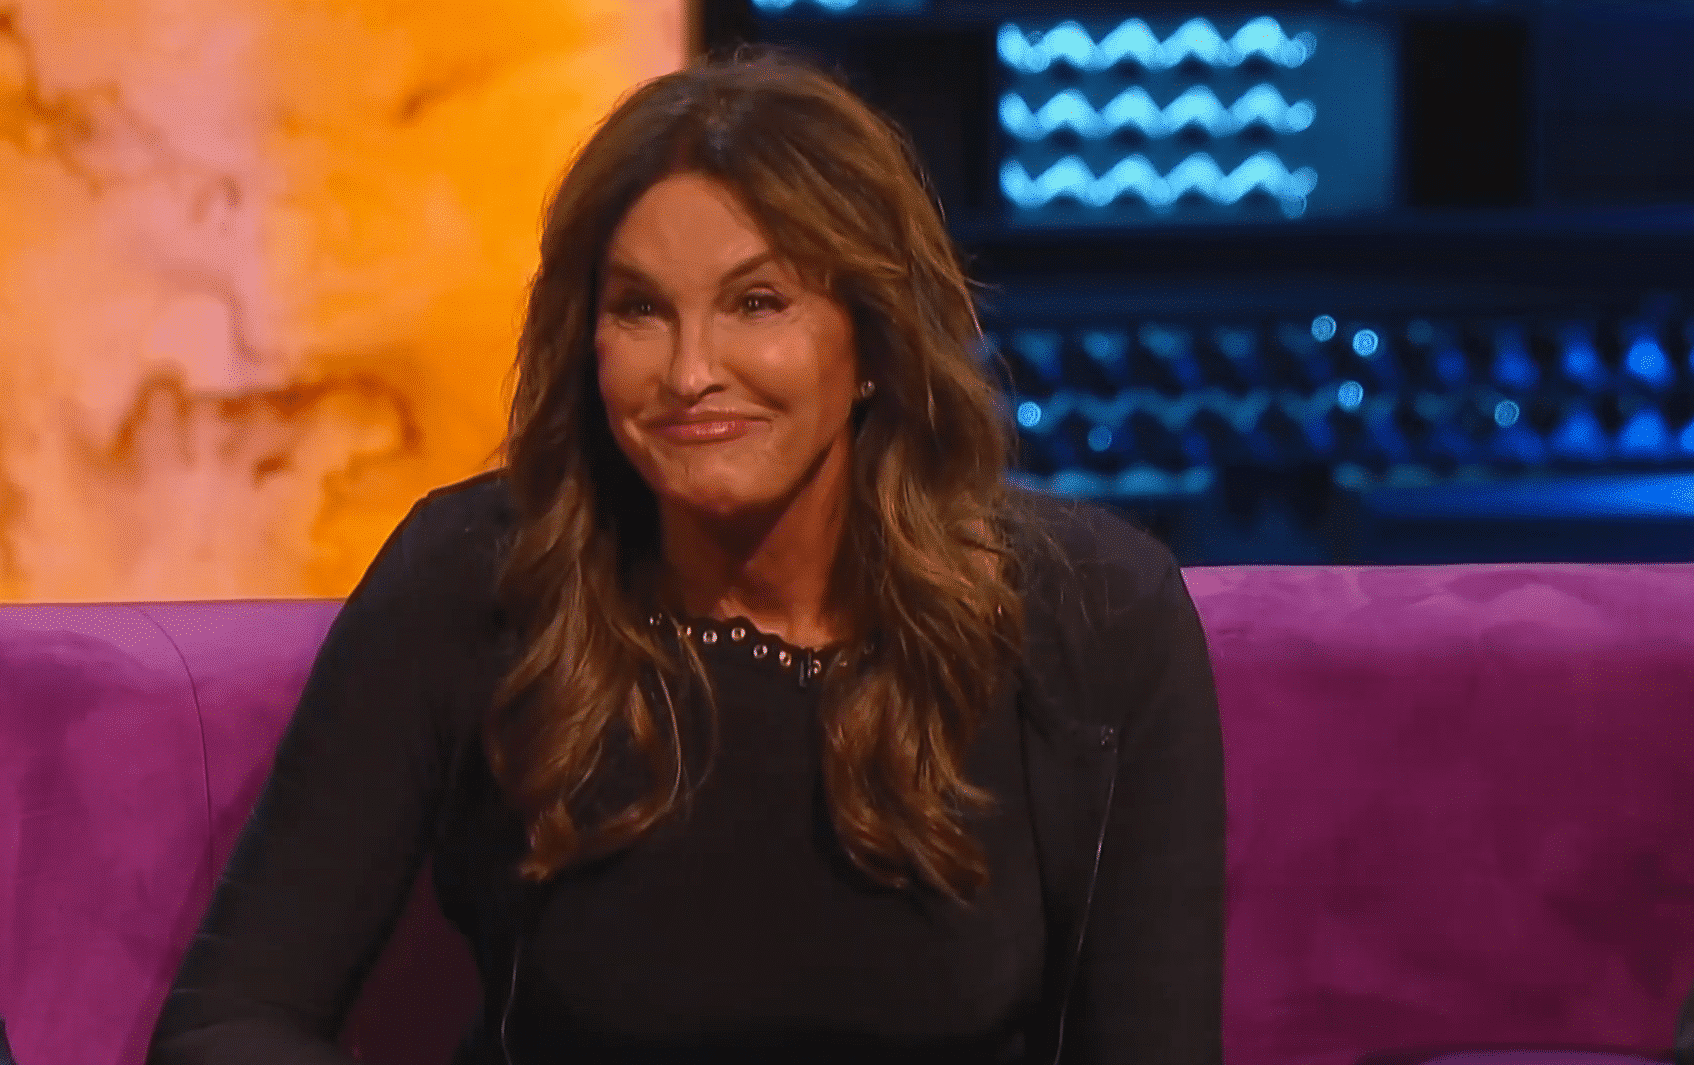 The Comedy Central Roast of Alec Baldwin was brutally spitted by Caitlyn Jenner